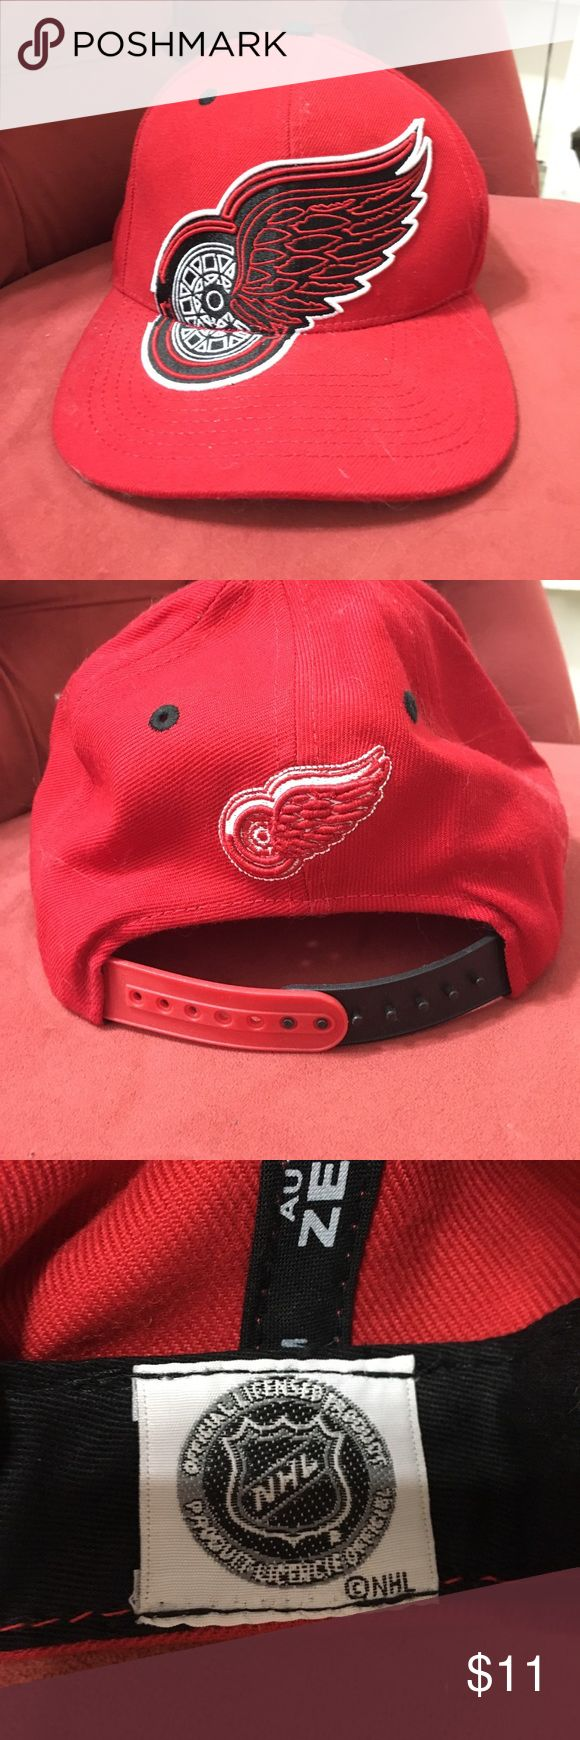 NHL red wings hat Red NHL red wings adjustable hat only worn once Accessories Hats